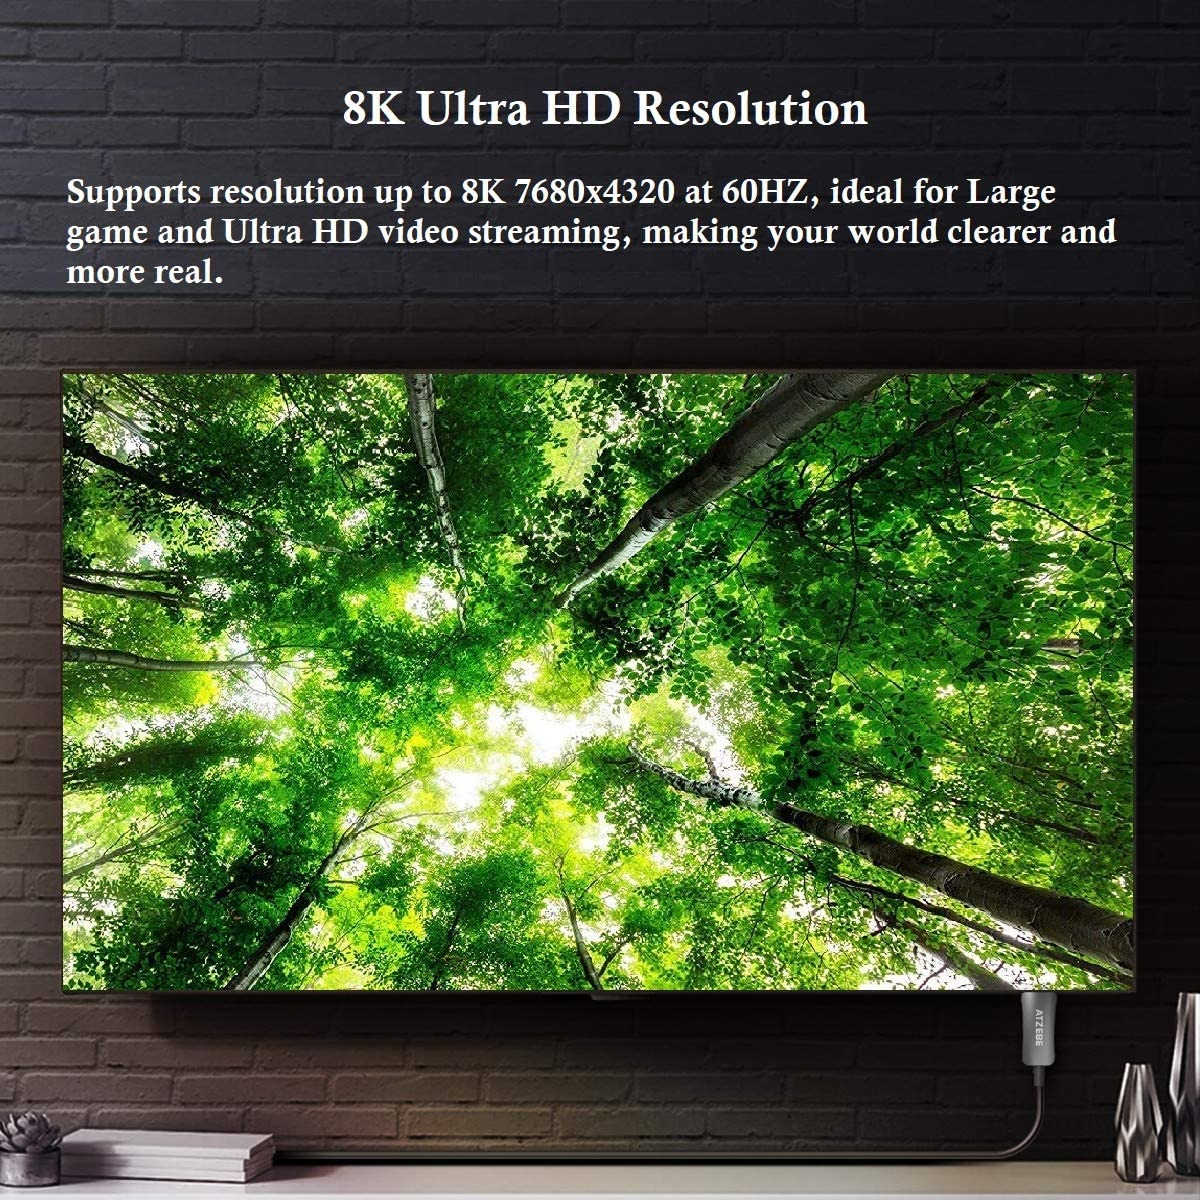 4K@144Hz Laptop 8K@60Hz Monitor/… DisplayPort 1.4 Cable Support 7680x4320 Resolution HDCP2.2 for Gaming PC DSC High Speed 32.4Gbps HDR10 HBR3 ATZEBE DisplayPort to DisplayPort Cable 3ft